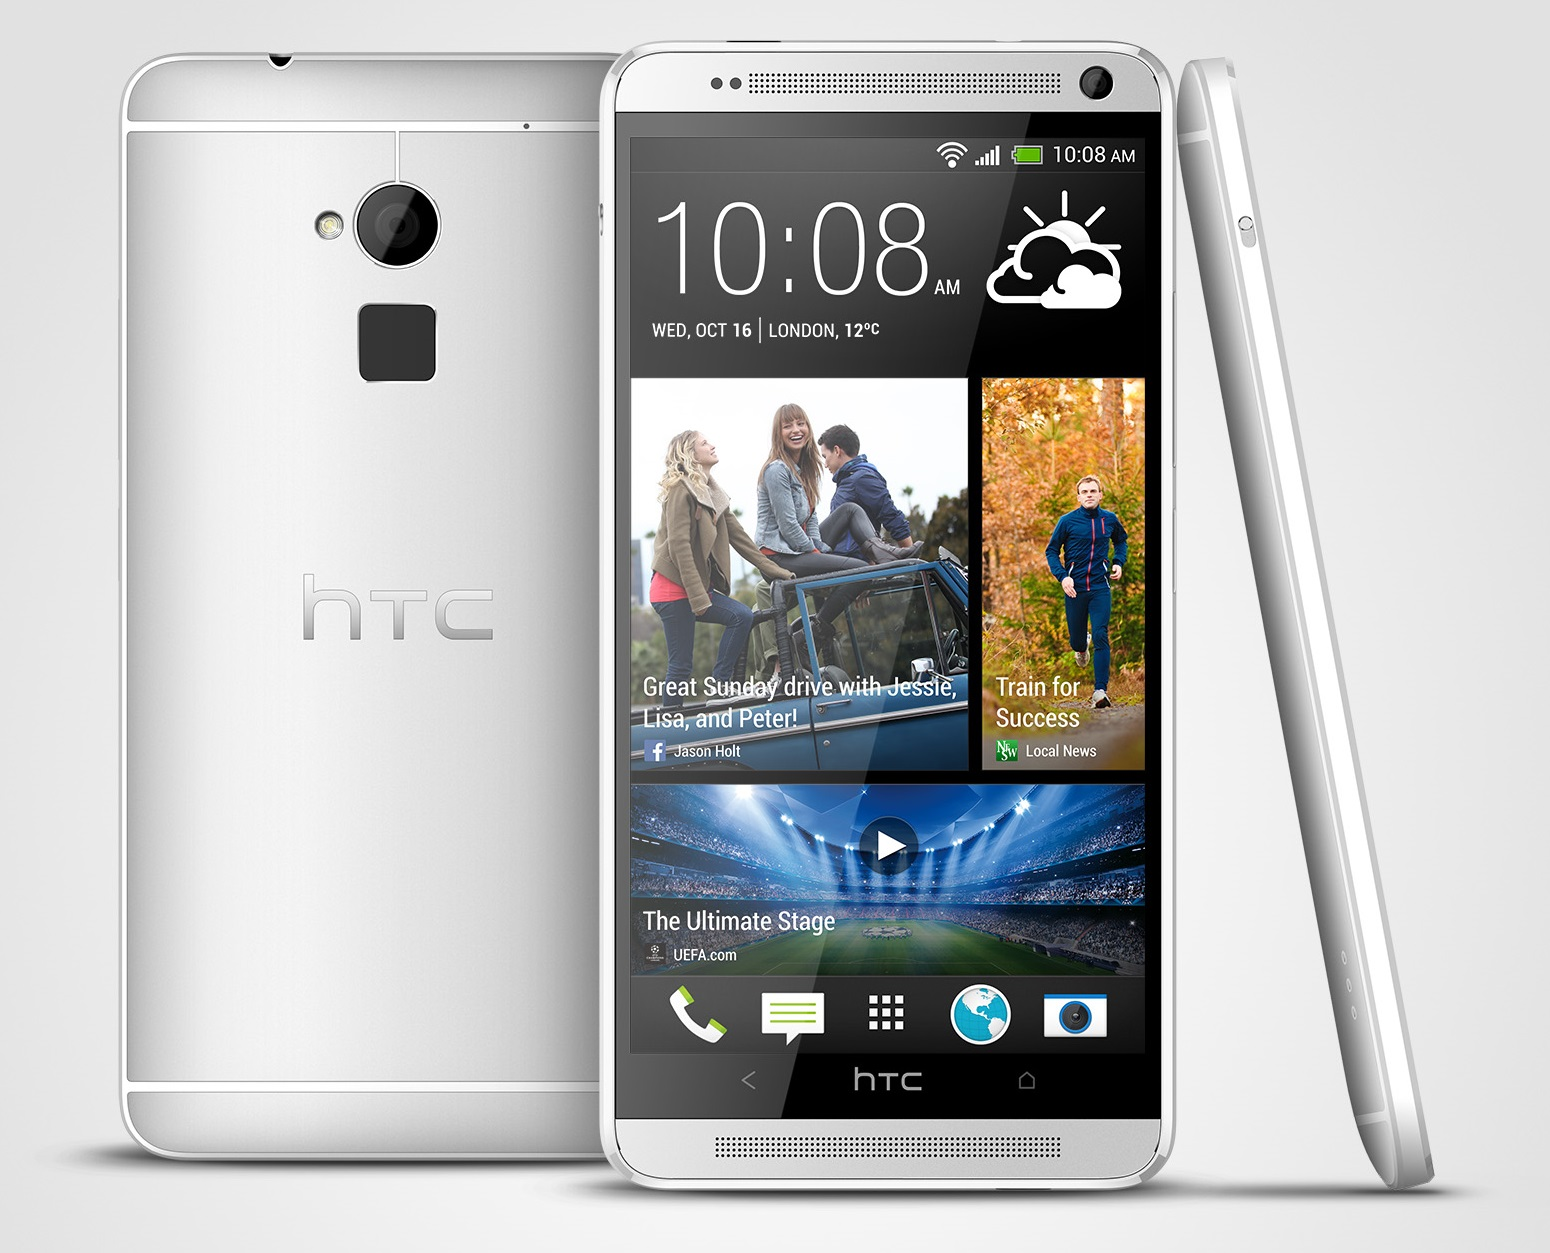 More Images of The HTC One Max Confirm The Fingerprint Sensor